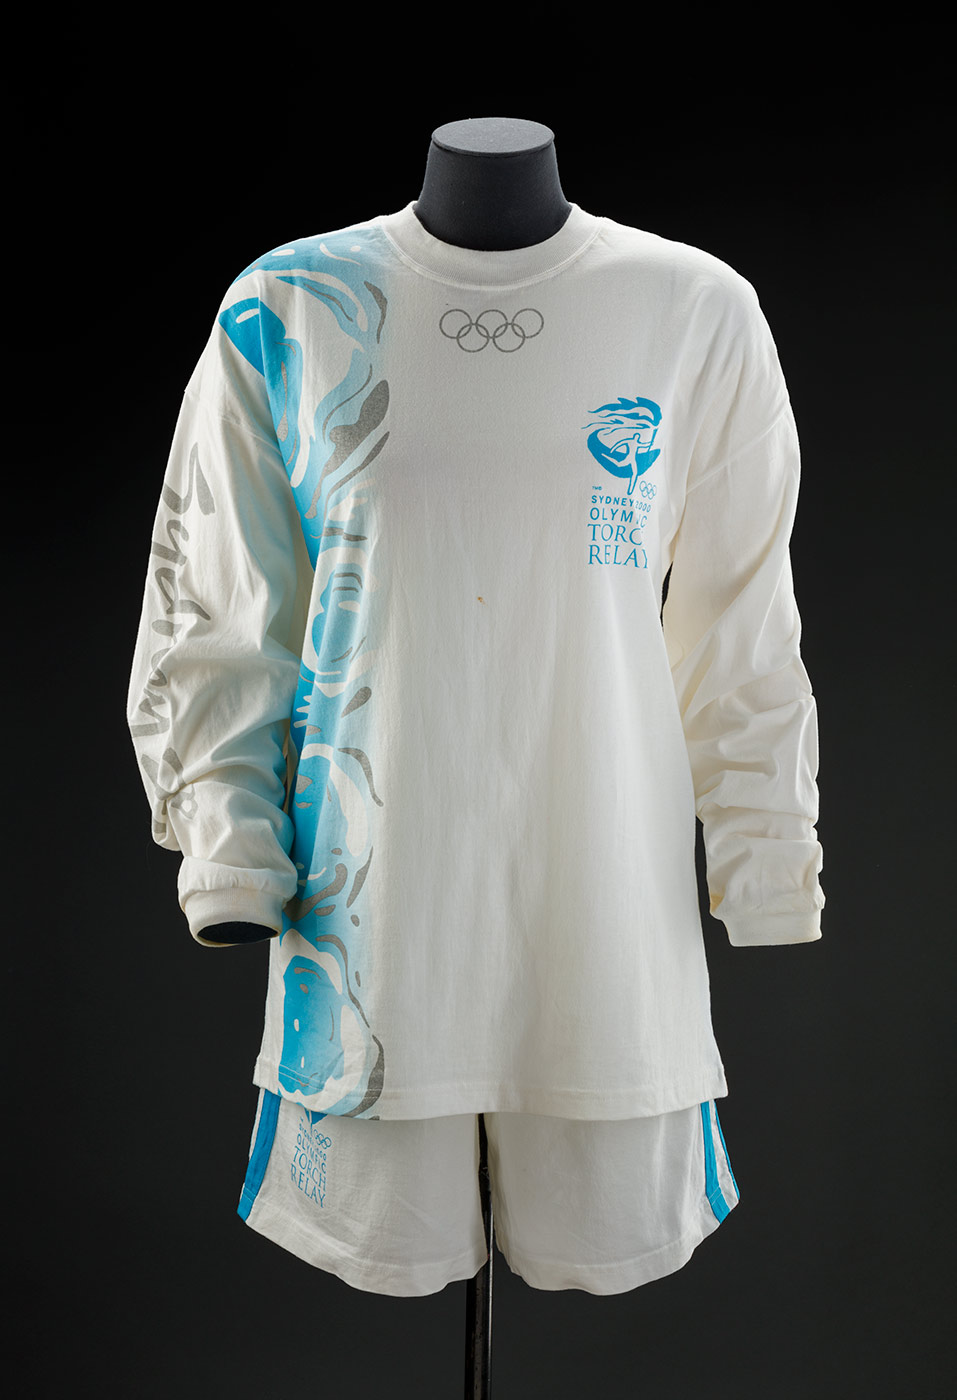 A white long sleeve stretch cotton shirt with a logo of a person running and the text 'SYDNEY 2000 / OLYMPIC / TORCH / RELAY' in light blue. There is a rectangular design running down the proper right front and back, with white and grey swirls on it. The Olympic rings in grey are printed below the neckline, and the word 'Sydney' is printed in grey on the right arm. The neck and cuffs have white ribbing. - click to view larger image